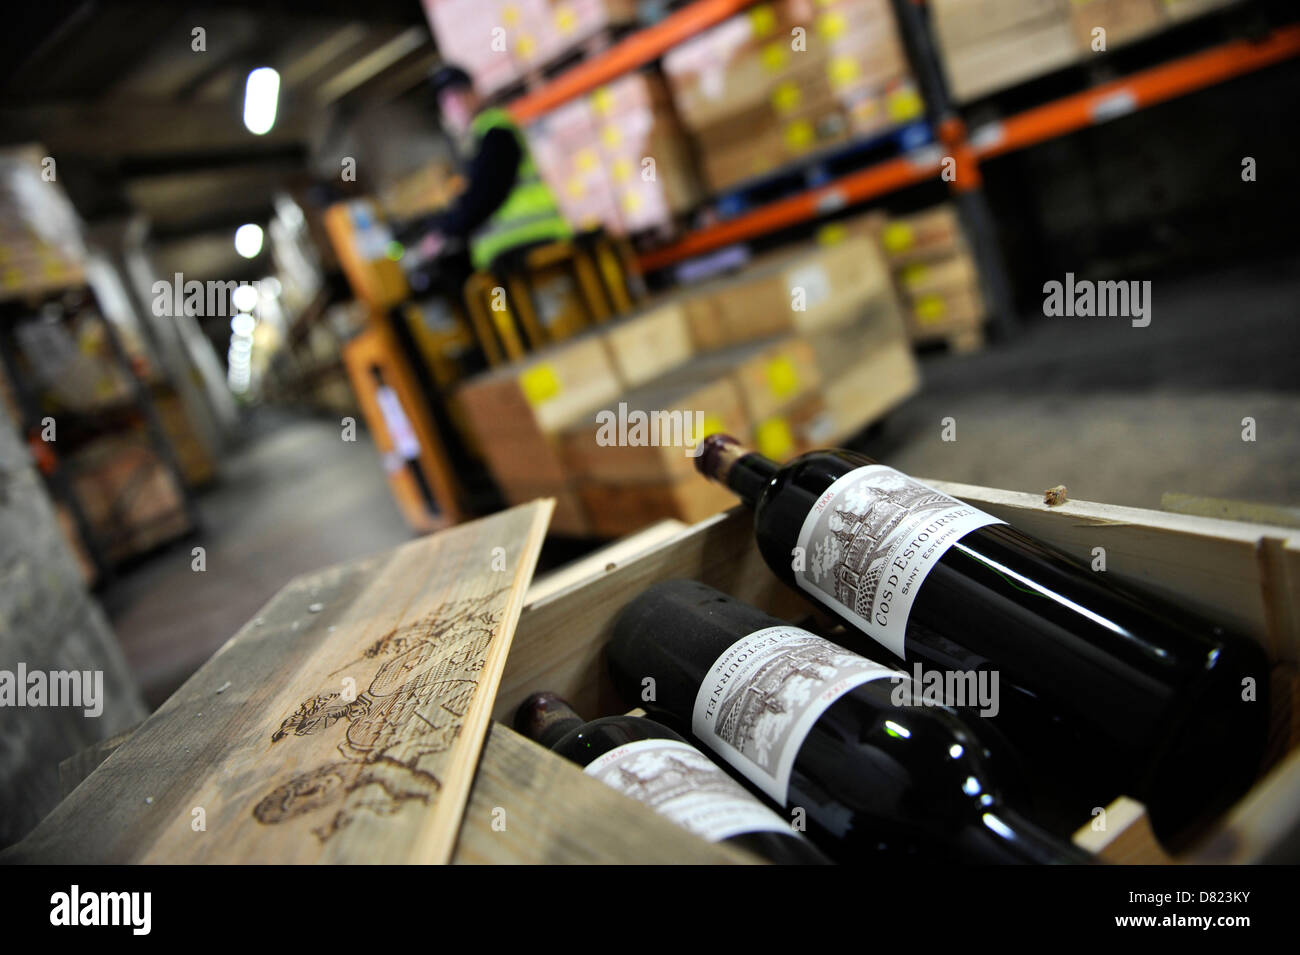 Cert Octaviau0027s Corsham Cellars a fine wine storage facility on the site of an old stone & Petrus Expensive Stock Photos u0026 Petrus Expensive Stock Images - Alamy